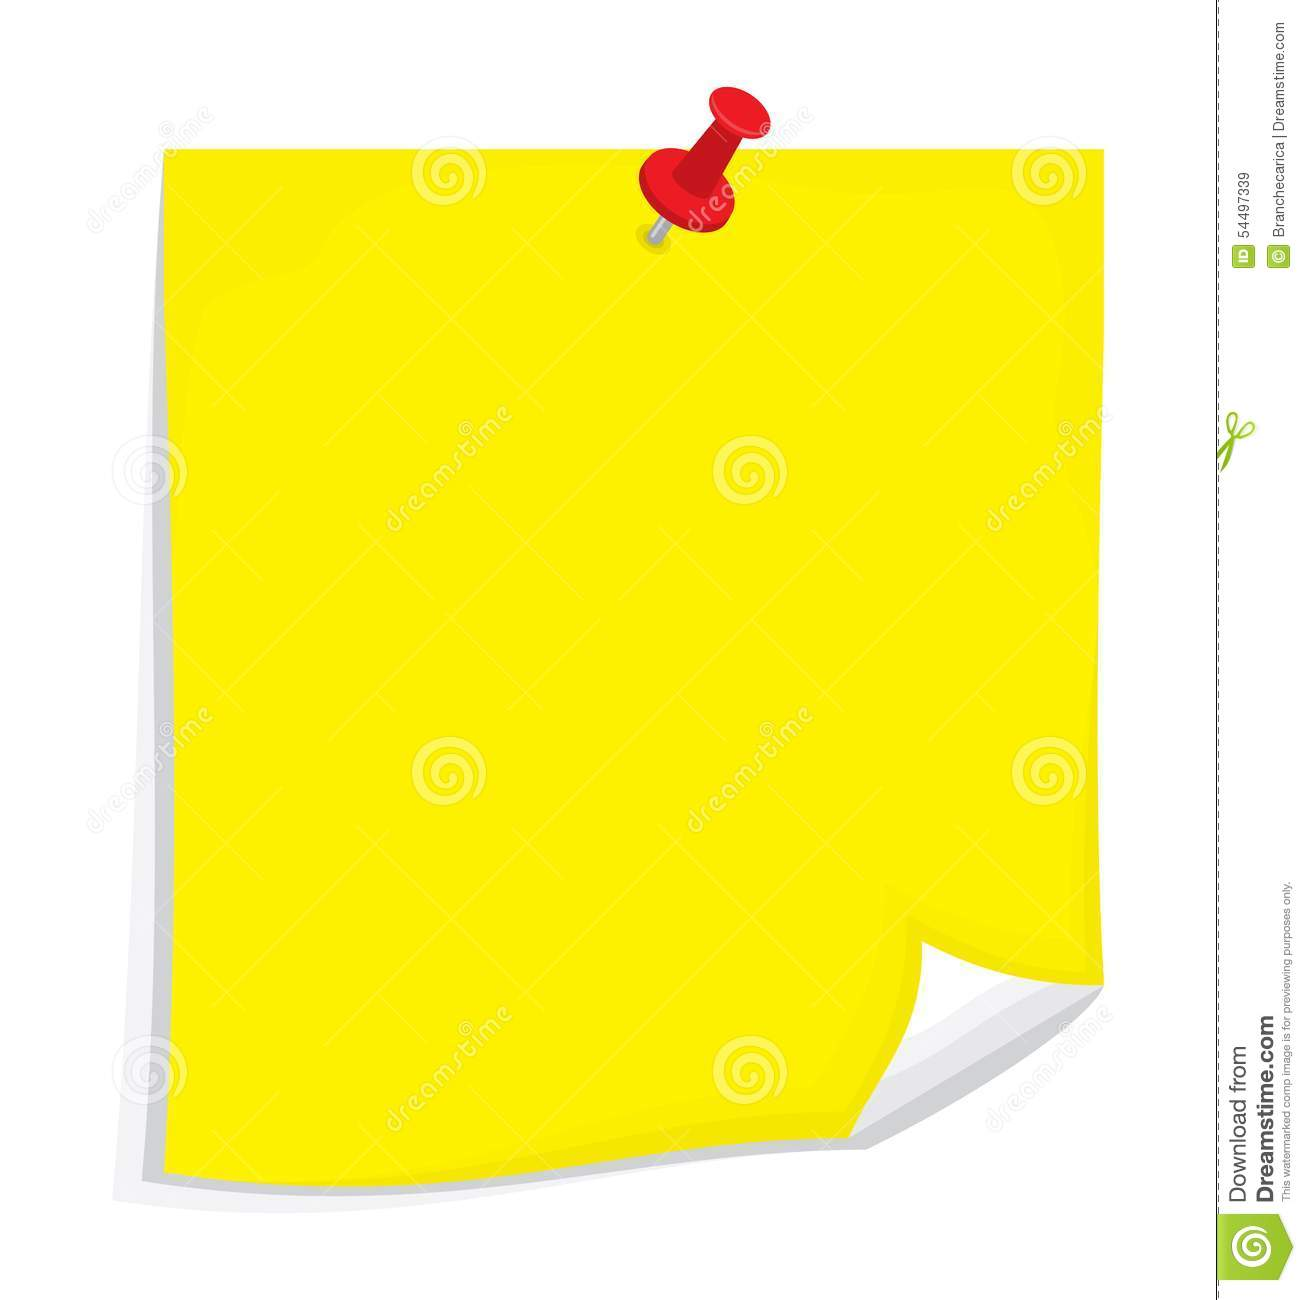 vector sticky note stock illustration illustration of background rh dreamstime com sticky note vector photoshop sticky note vector illustration